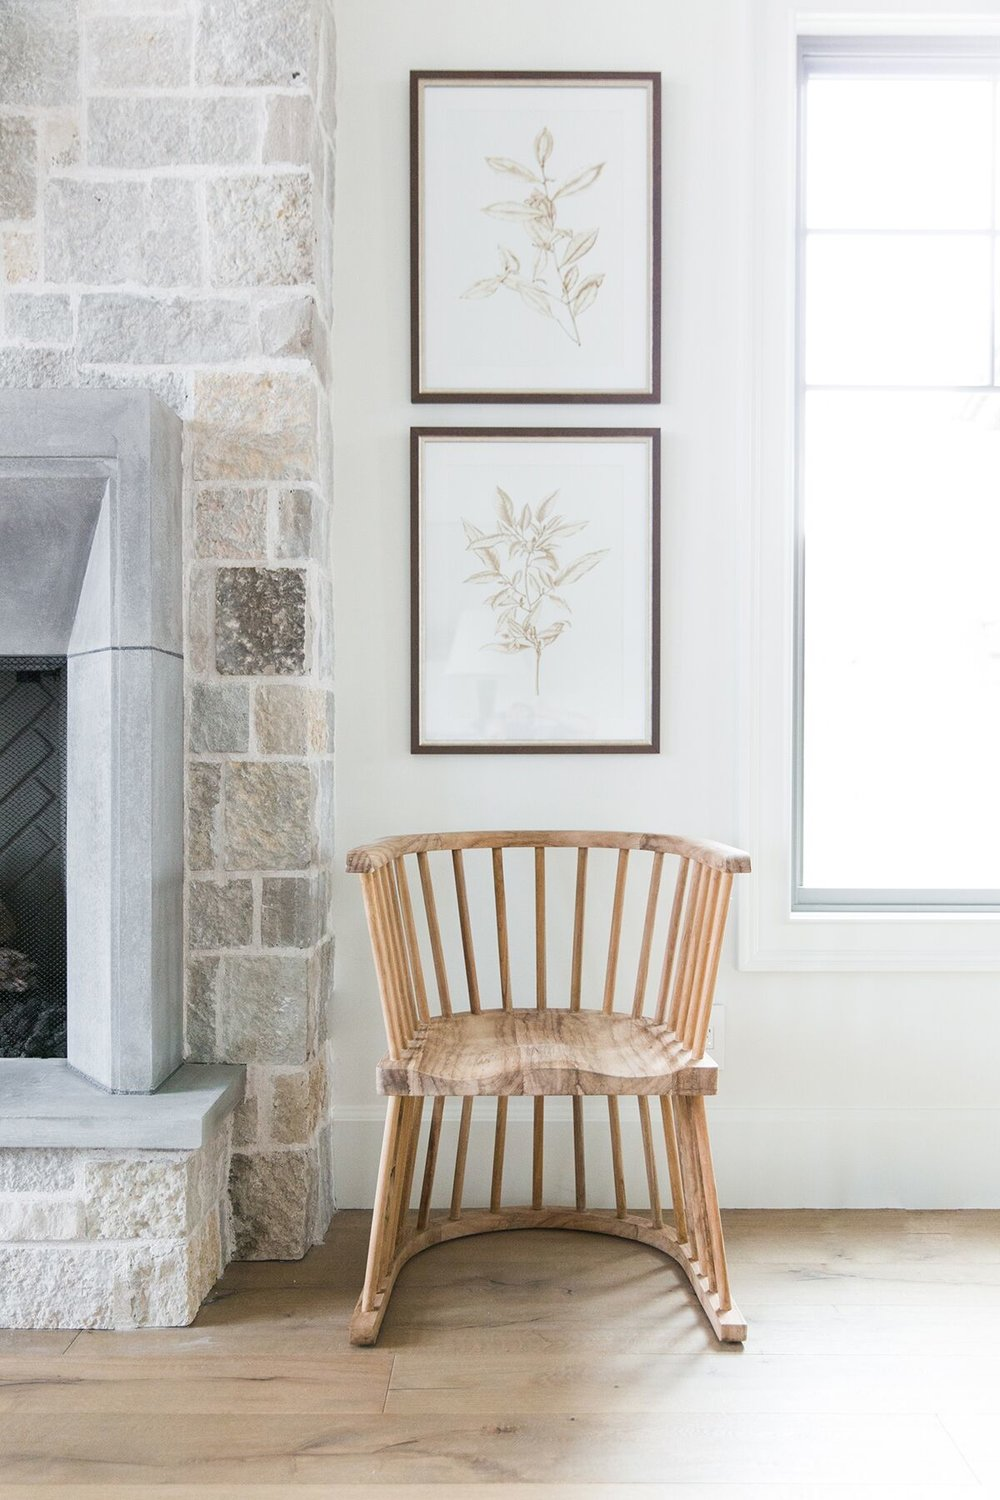 Stacked Coordinating Artwork with chair by fireplace - Studio McGee Design